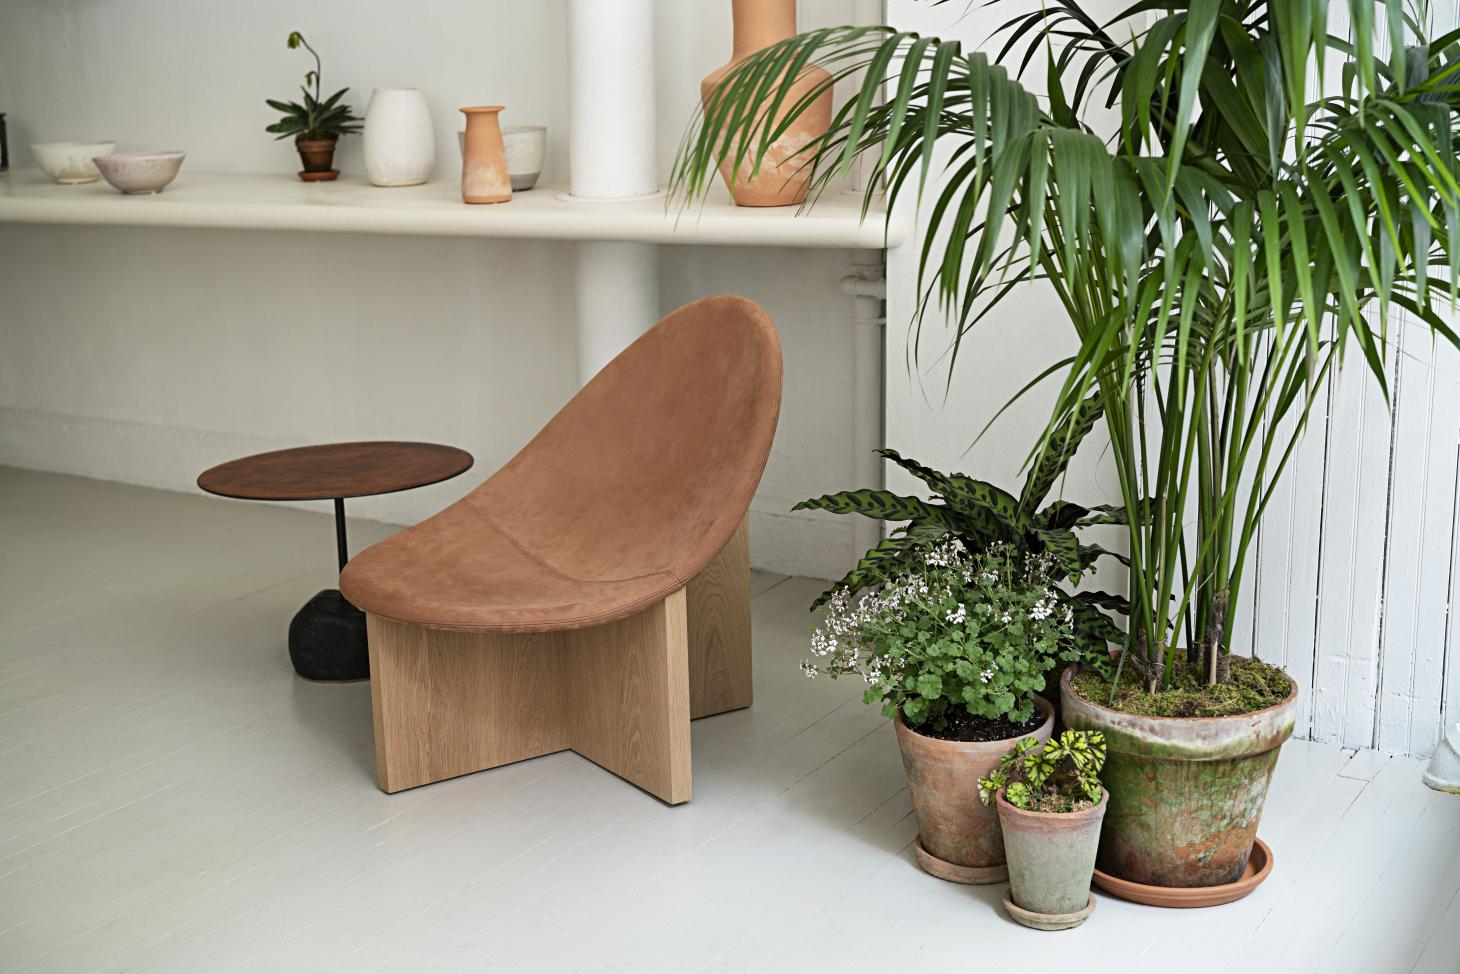 The 'Nido' chair by Estudio Persona and 'Grounded Circle' table by Stephen Kenn. On the shelves in the background are ceramics by Emilie Halpern